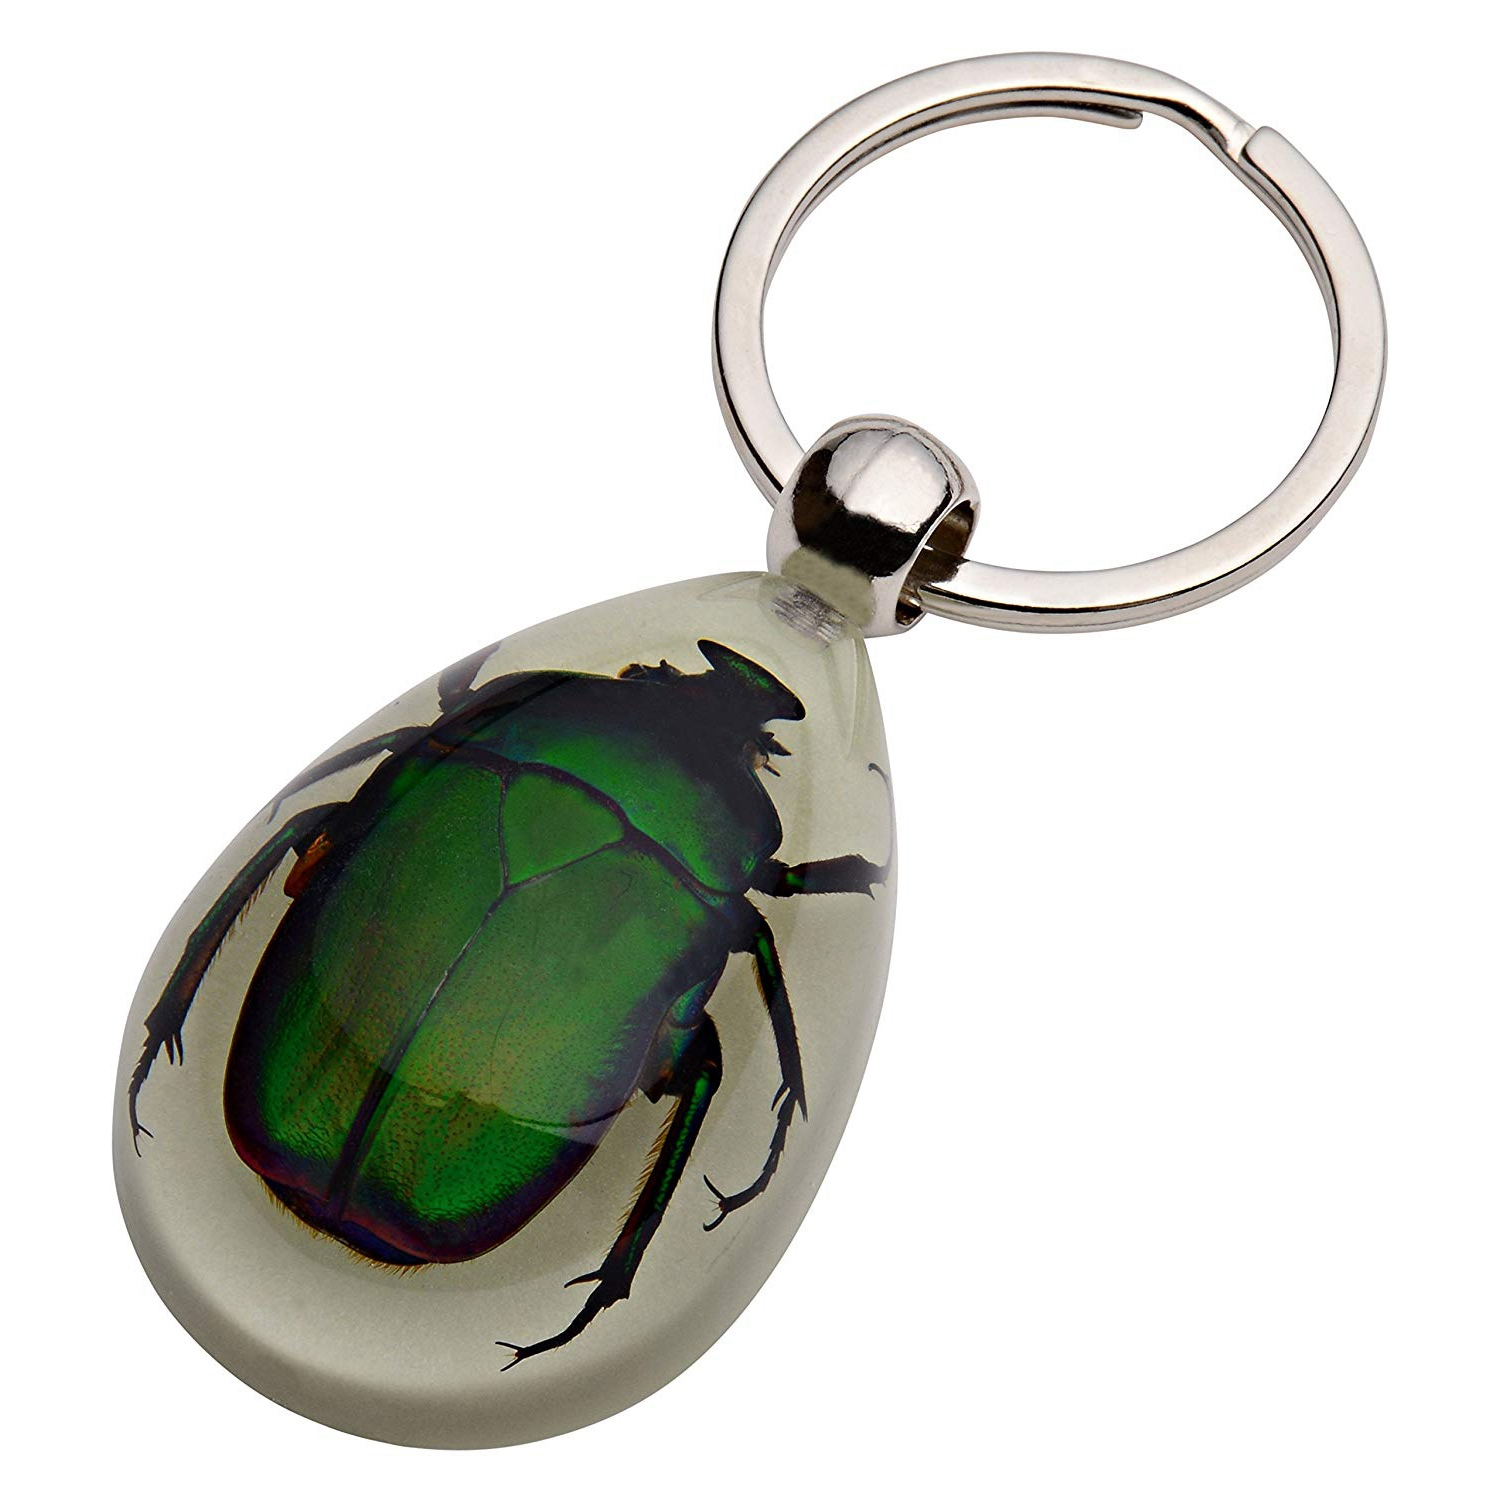 Glow-In-The-Dark Real Insect Keychain